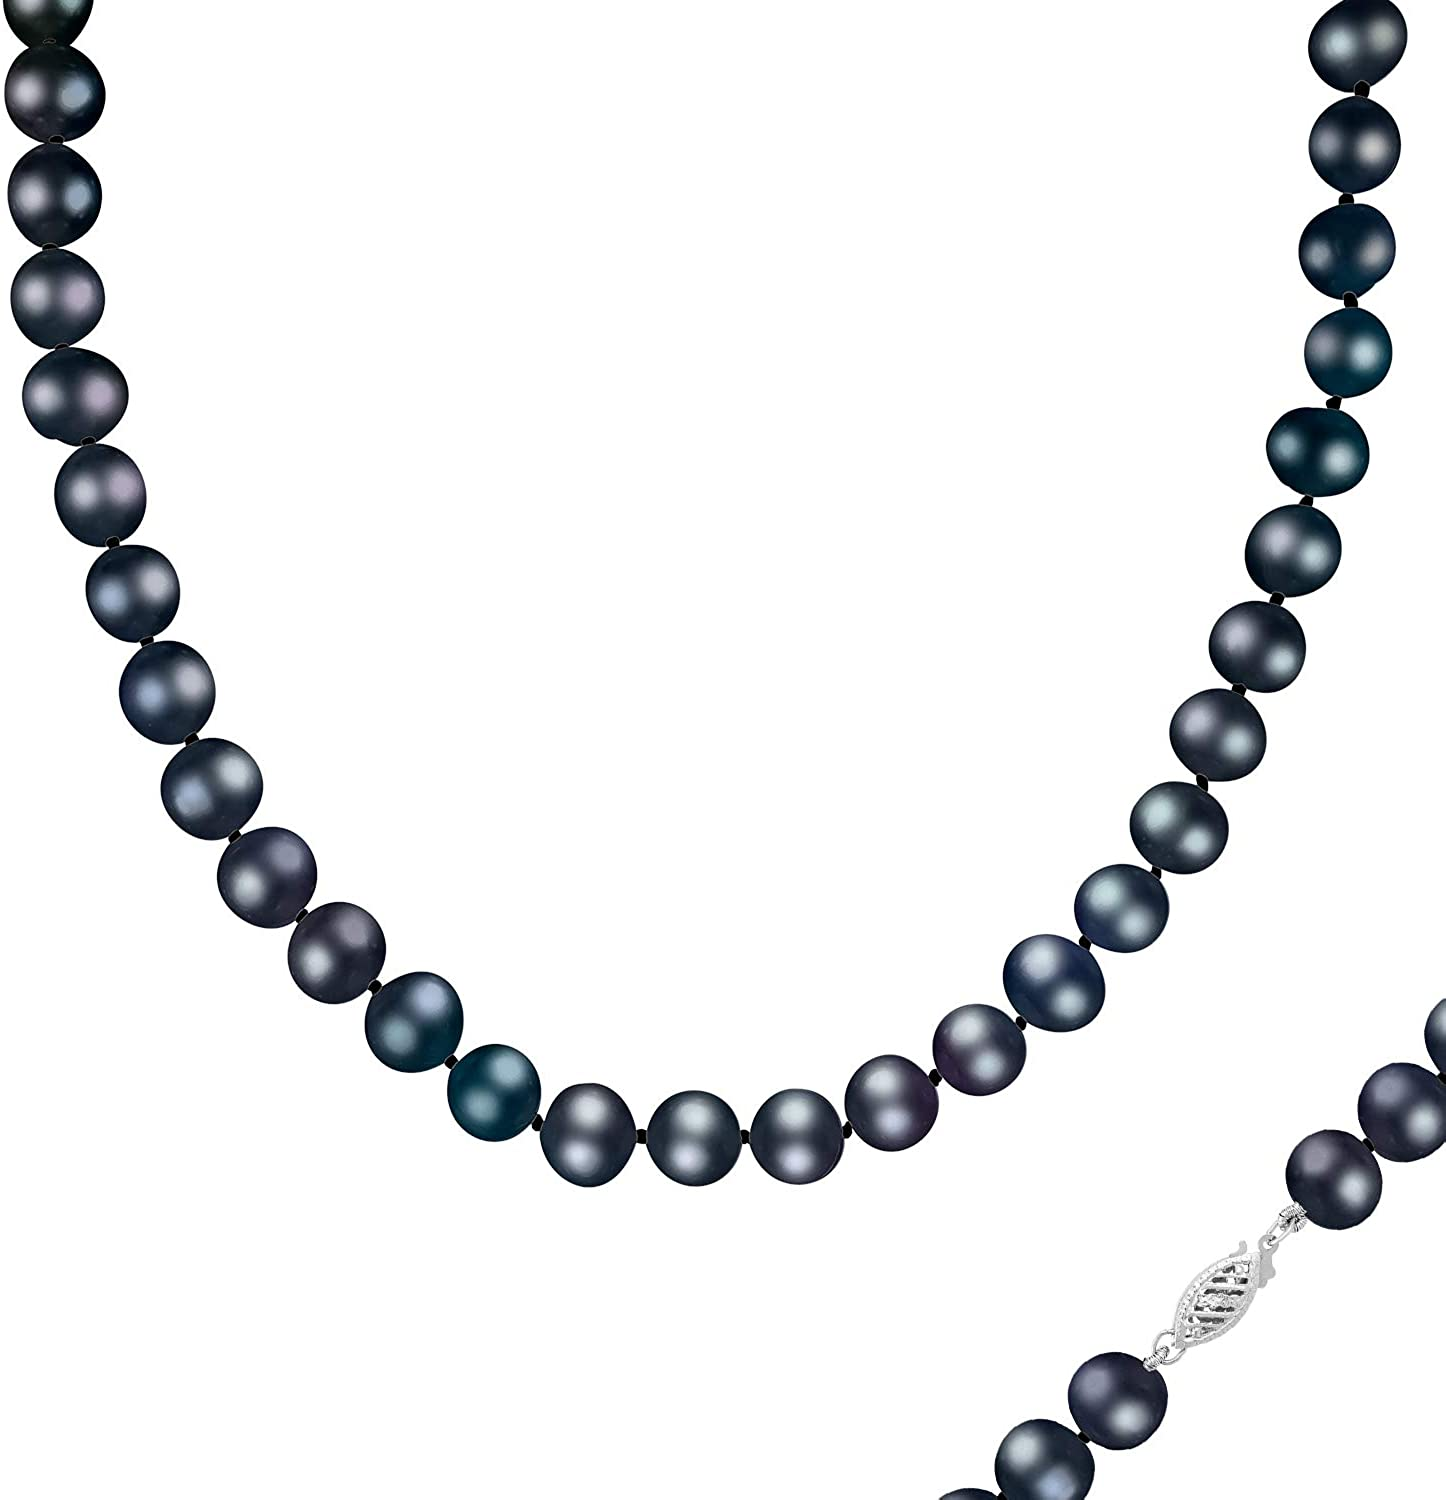 Splendid Pearls 14K Gold AA Quality Round Black Freshwater Cultured Pearl Strand Necklace for Women in 24